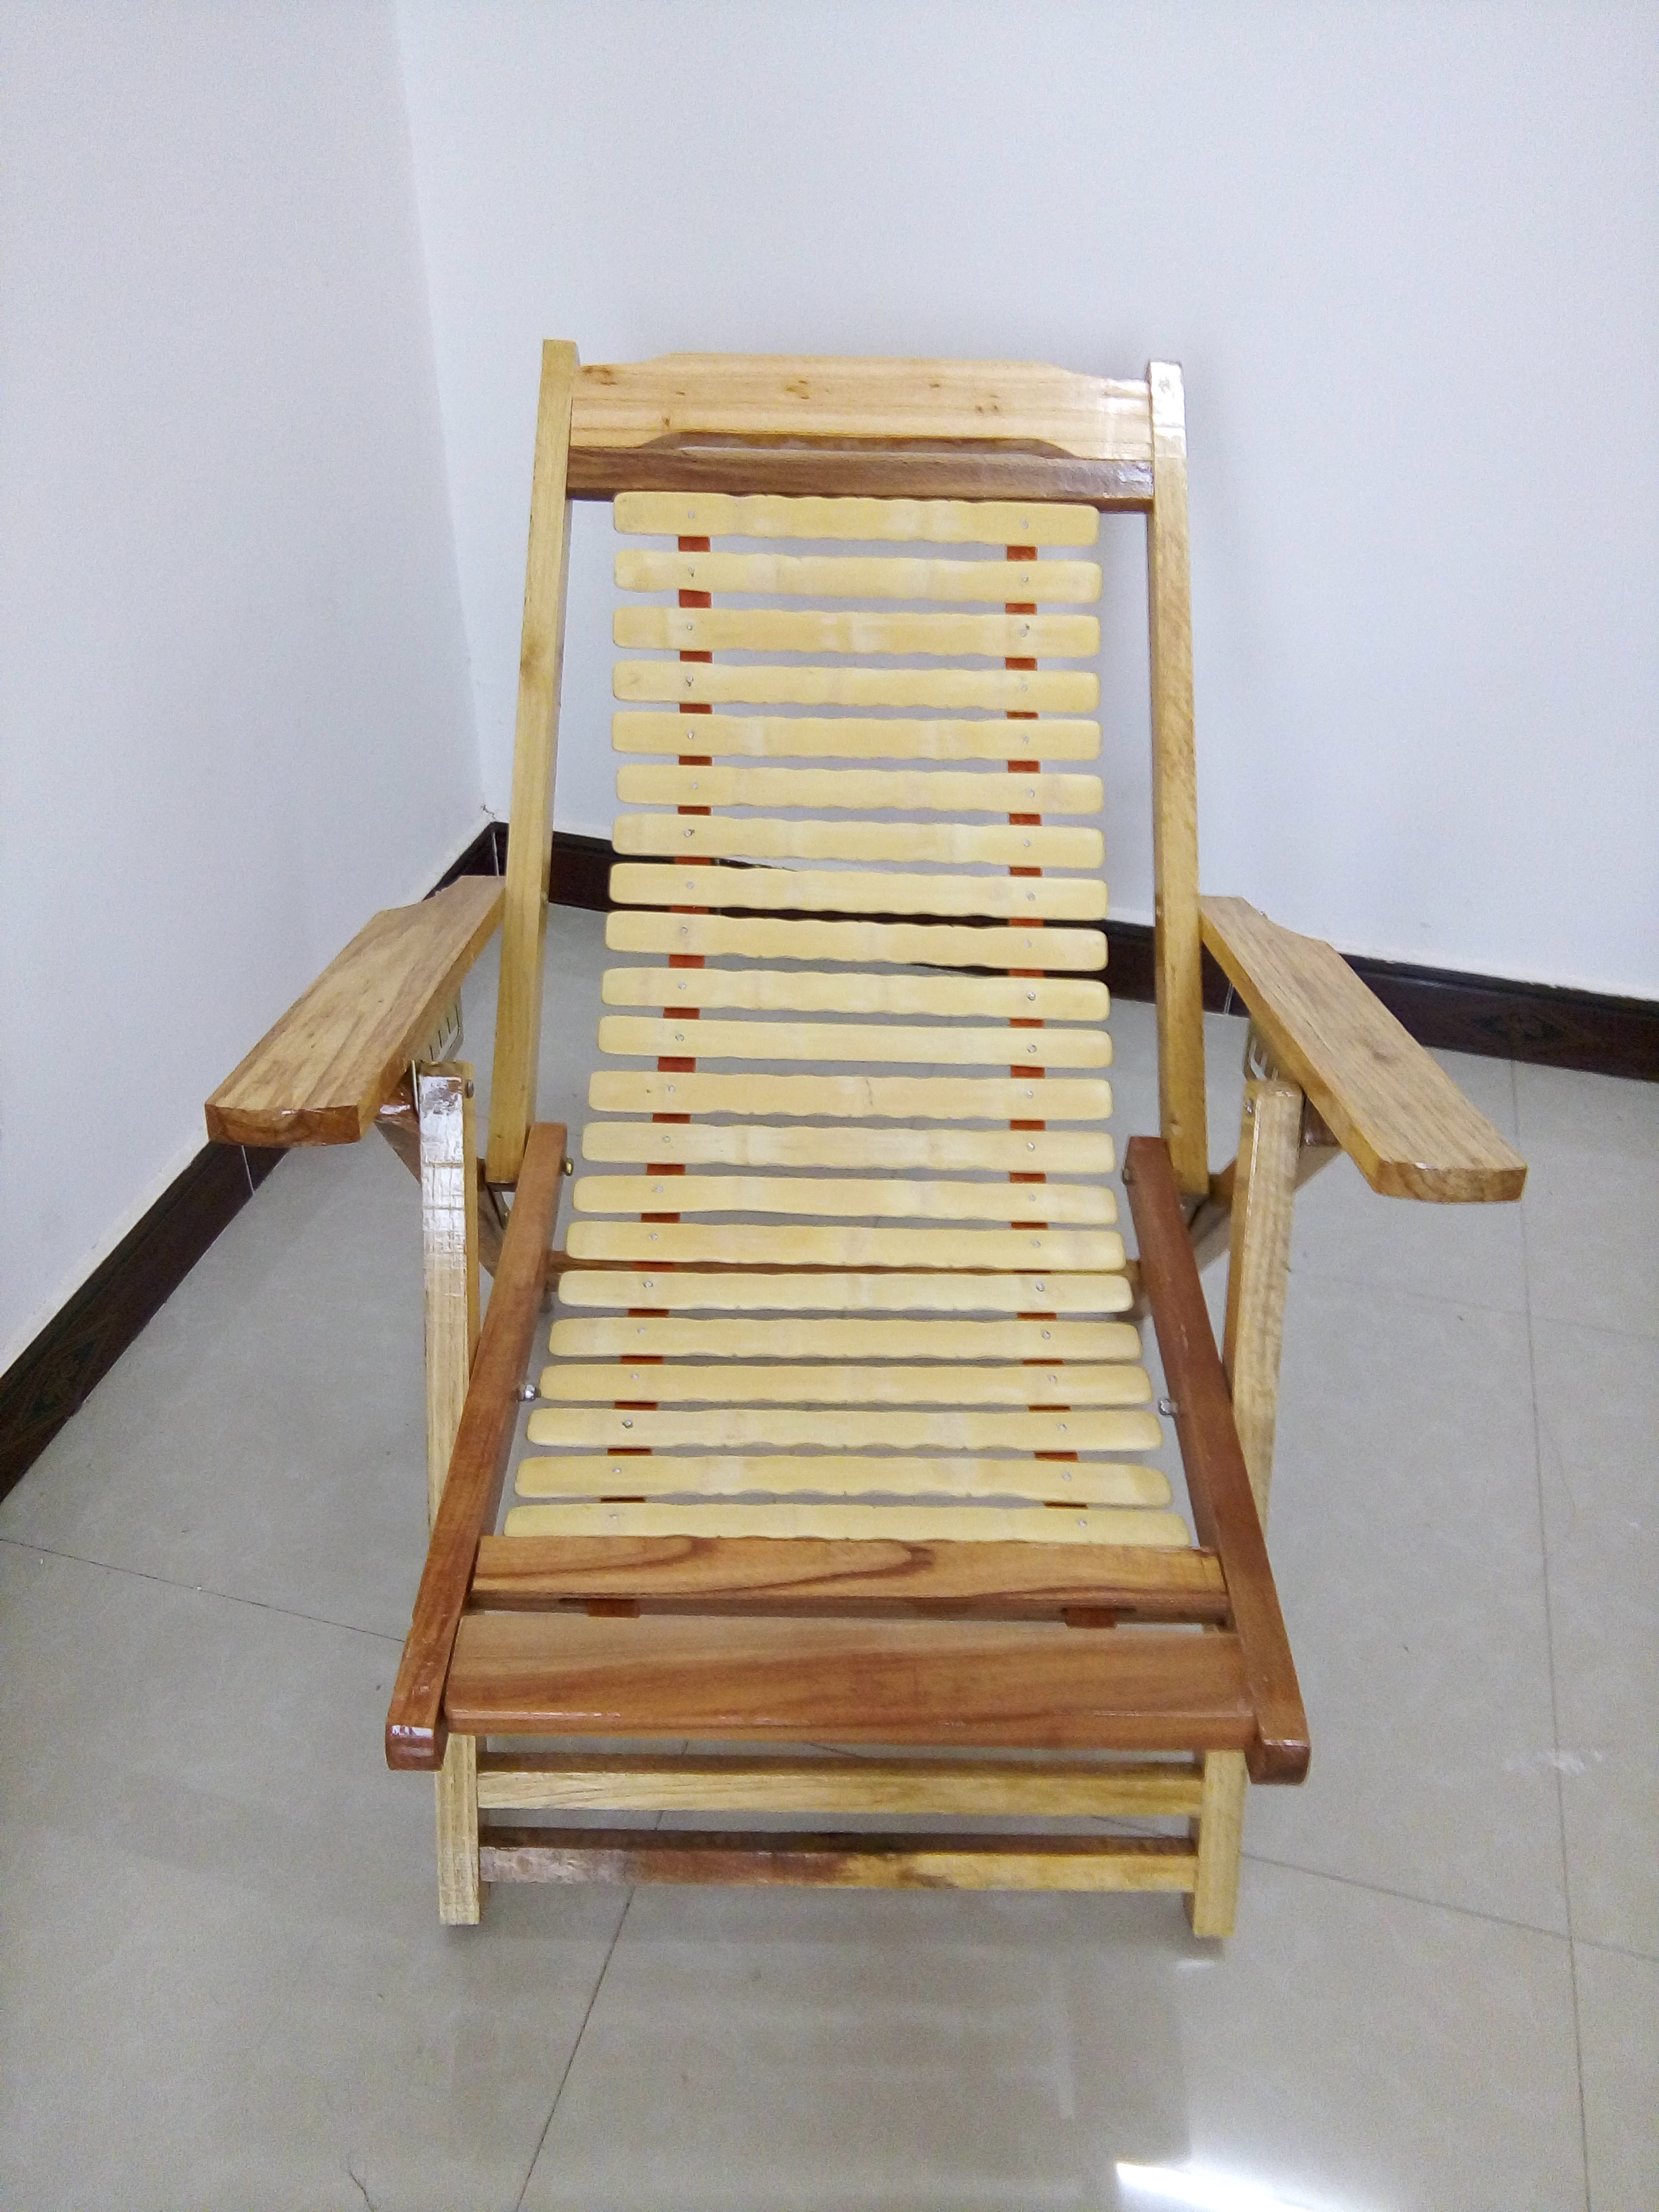 Office Nap Chair Cedar Wood Folding Chair Recliner Chairs Office Lunch Nap